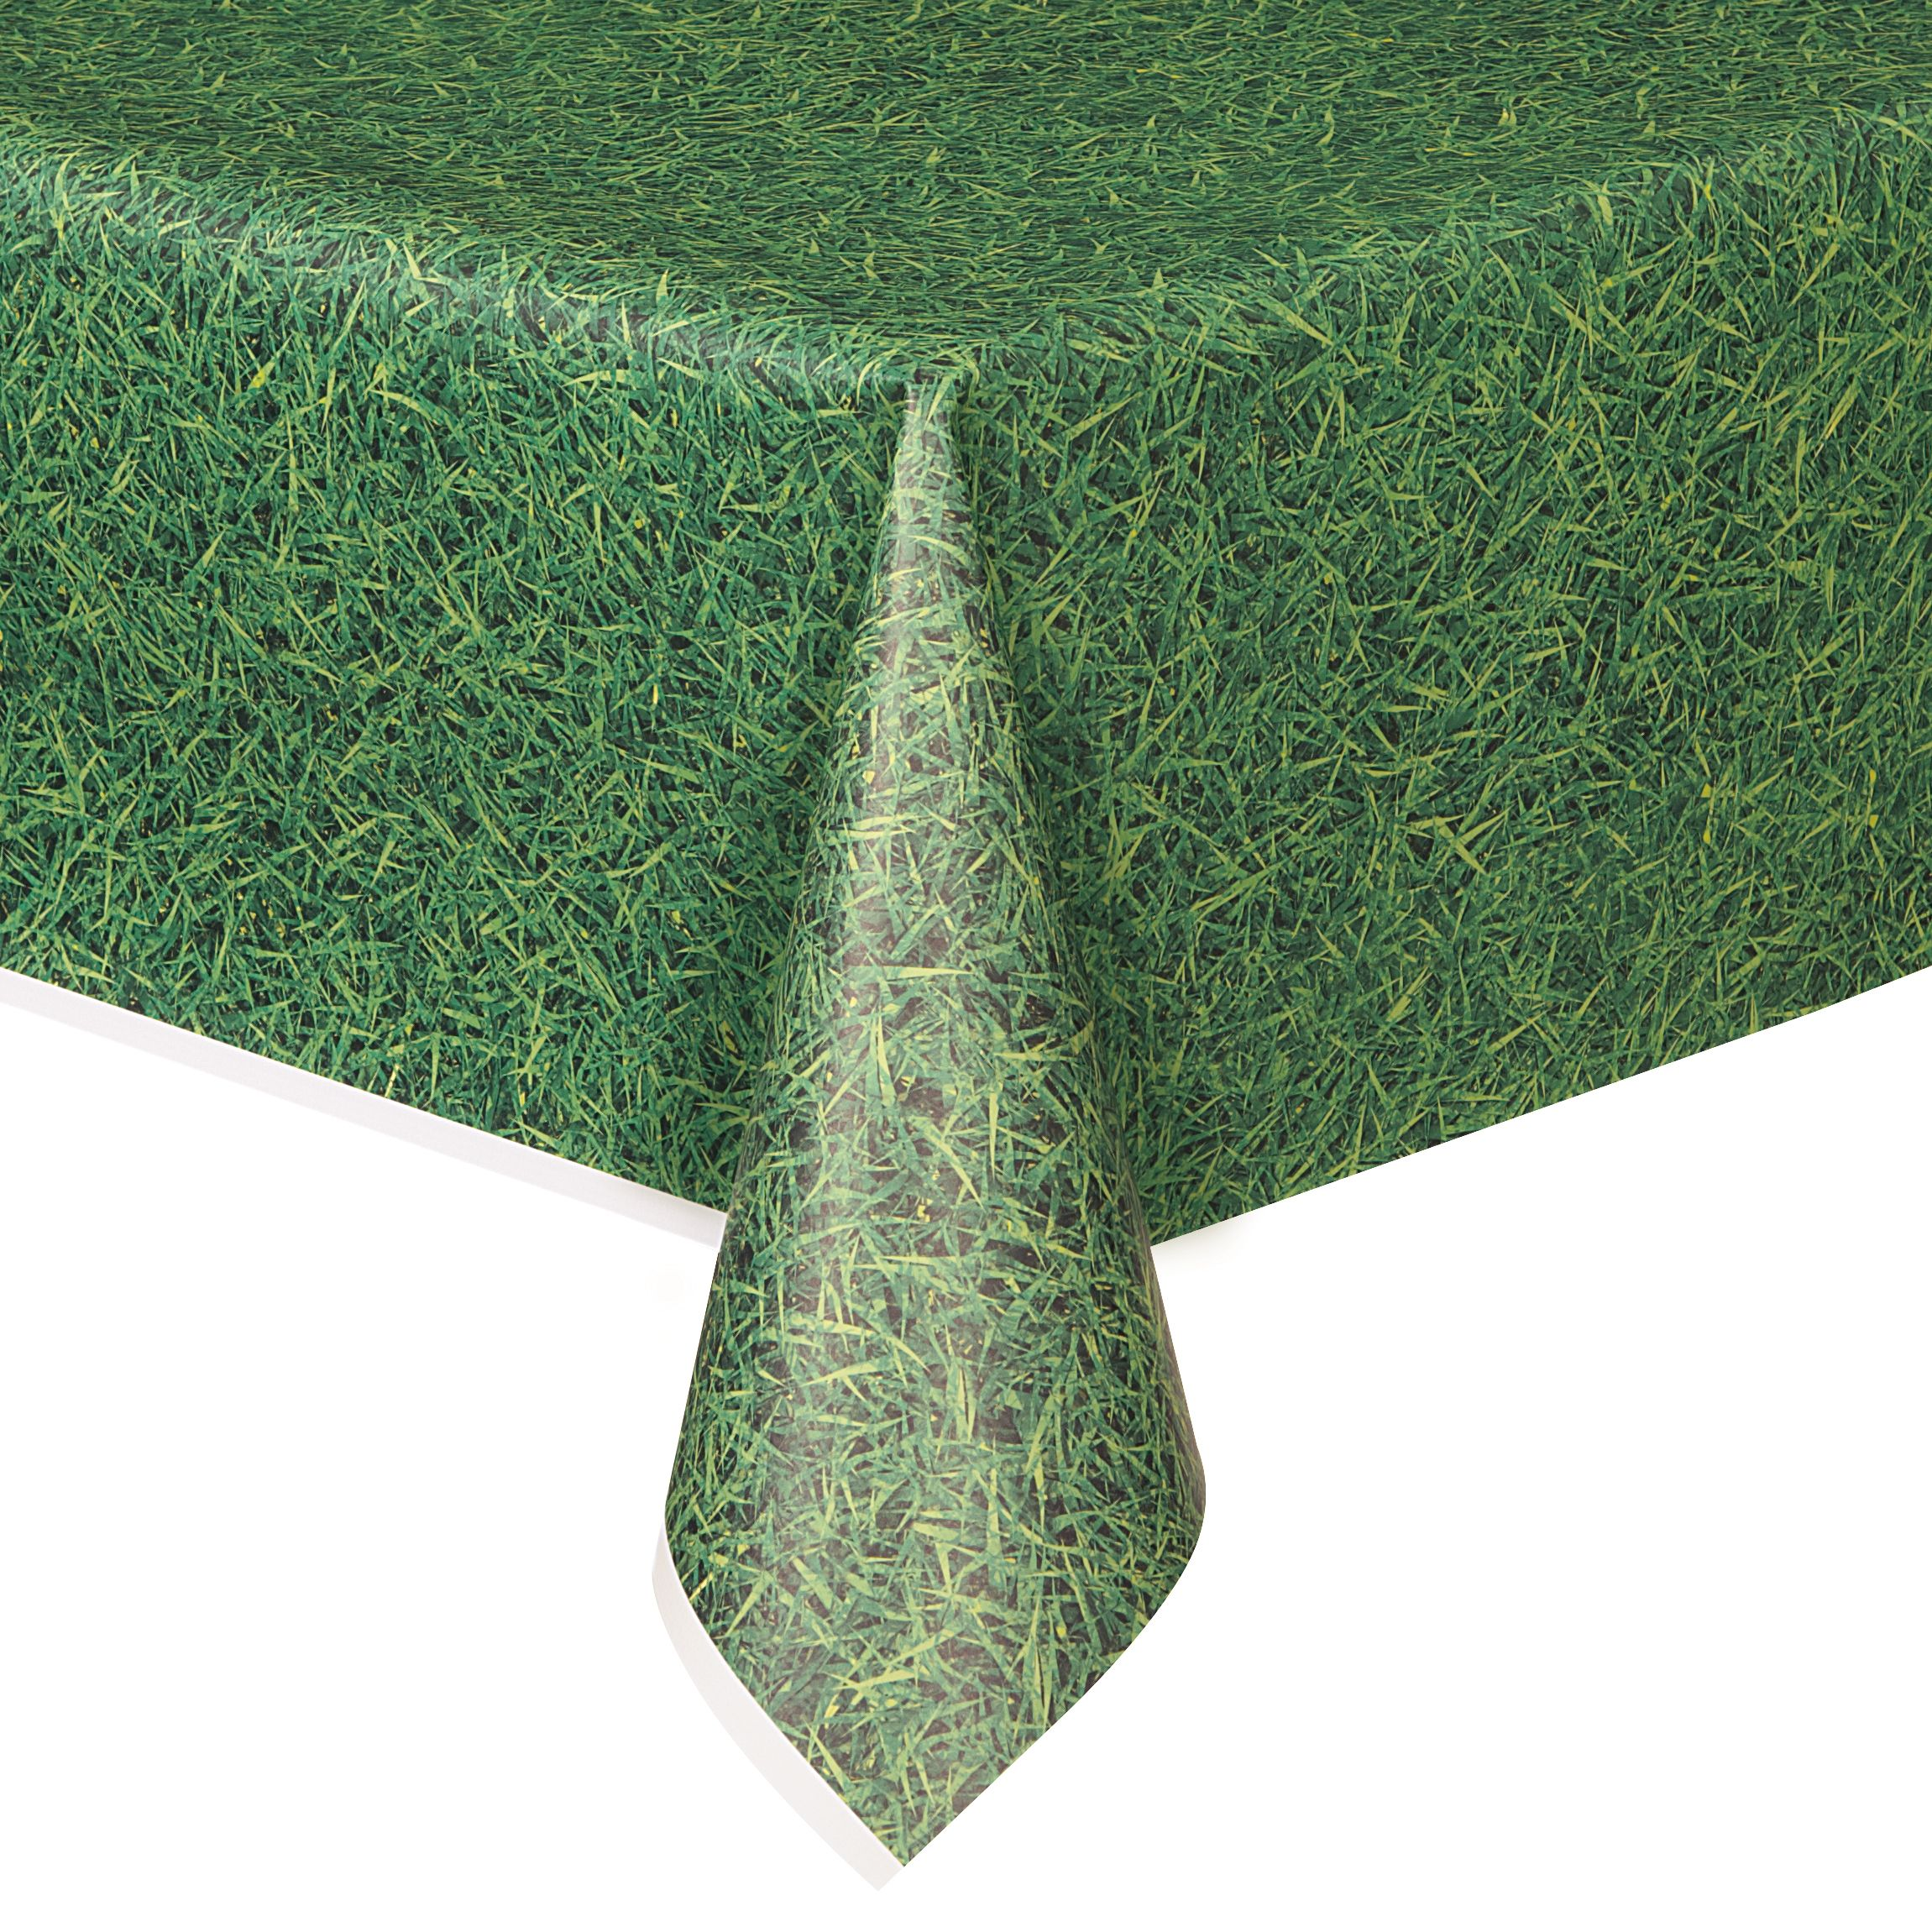 Green Grass Printed Plastic Party Tablecloth 108 X 54in Walmart Com